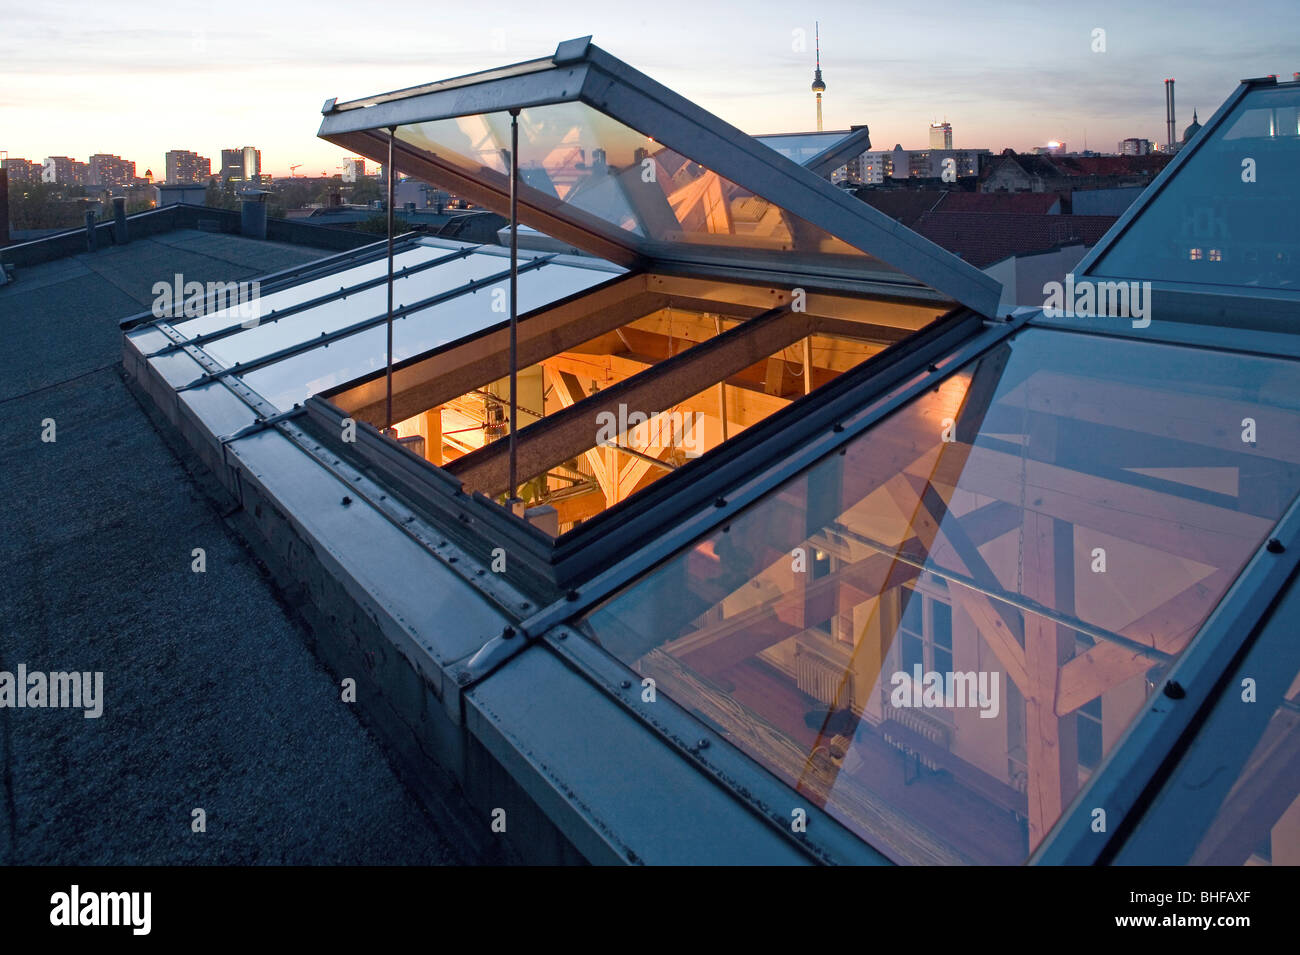 Loft Wohnung Berlin Above The Glass Roof Of A Loft Apartment Loft Living Berlin